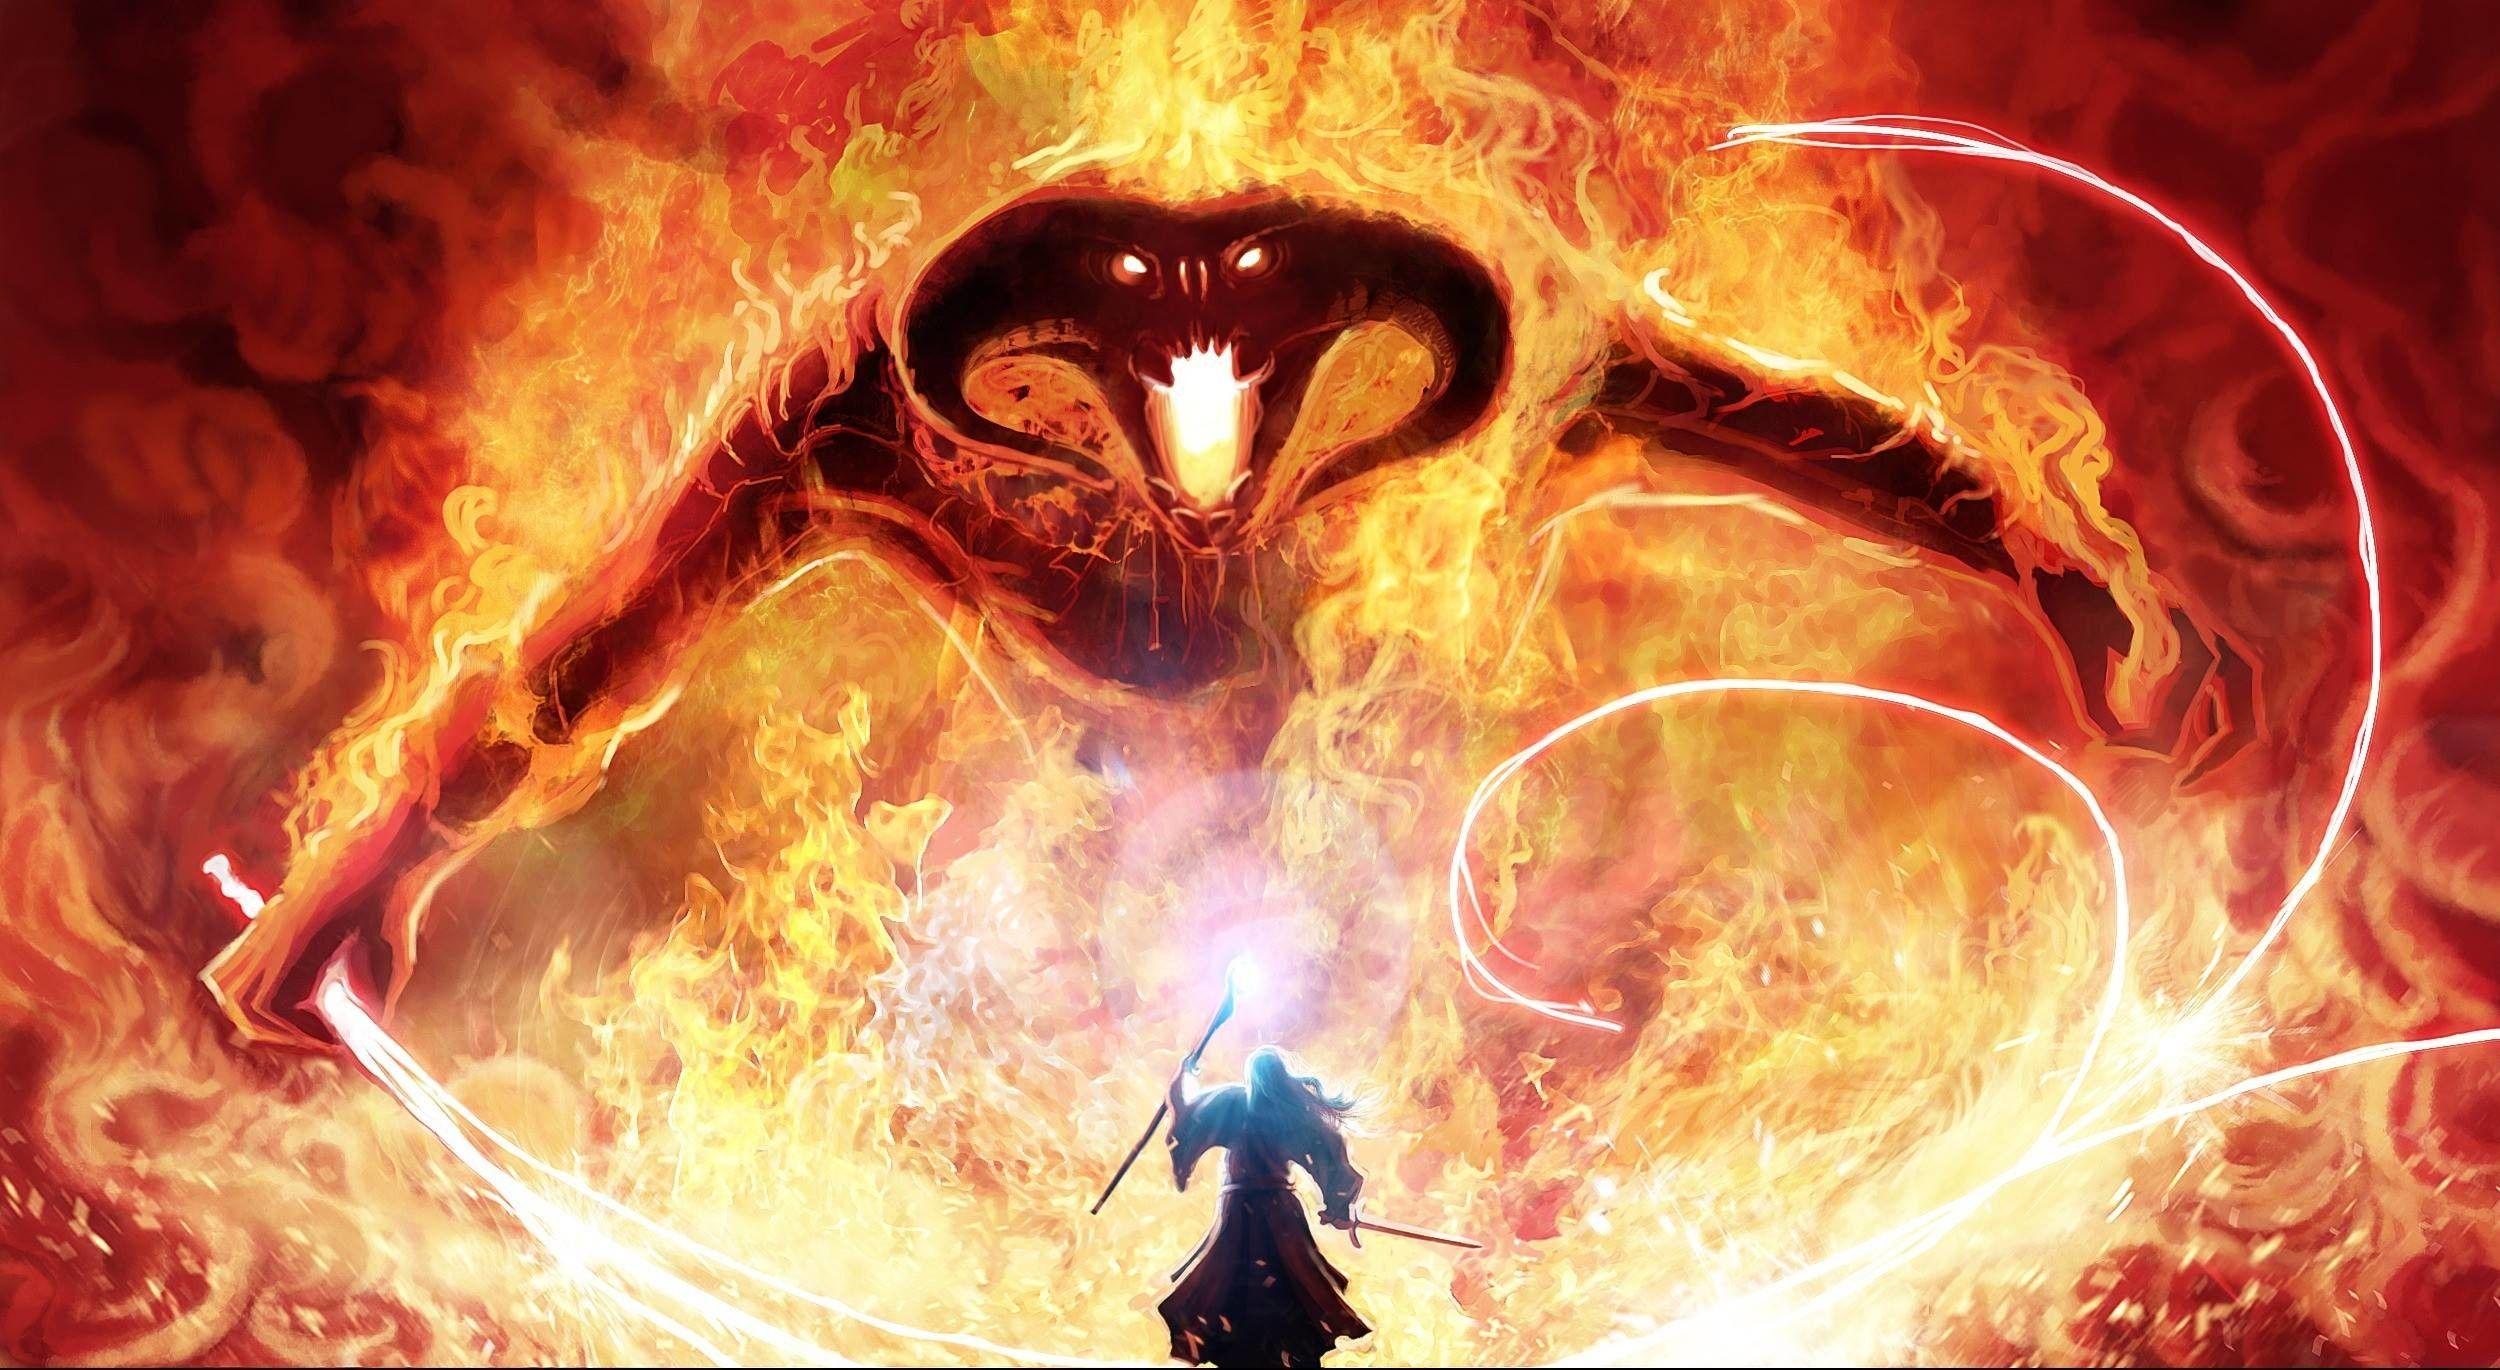 2500x1370 Gandalf And The Balrog Hd Wallpaper Download Hd Wallpaper High Balrog Lord Of The Rings Gandalf